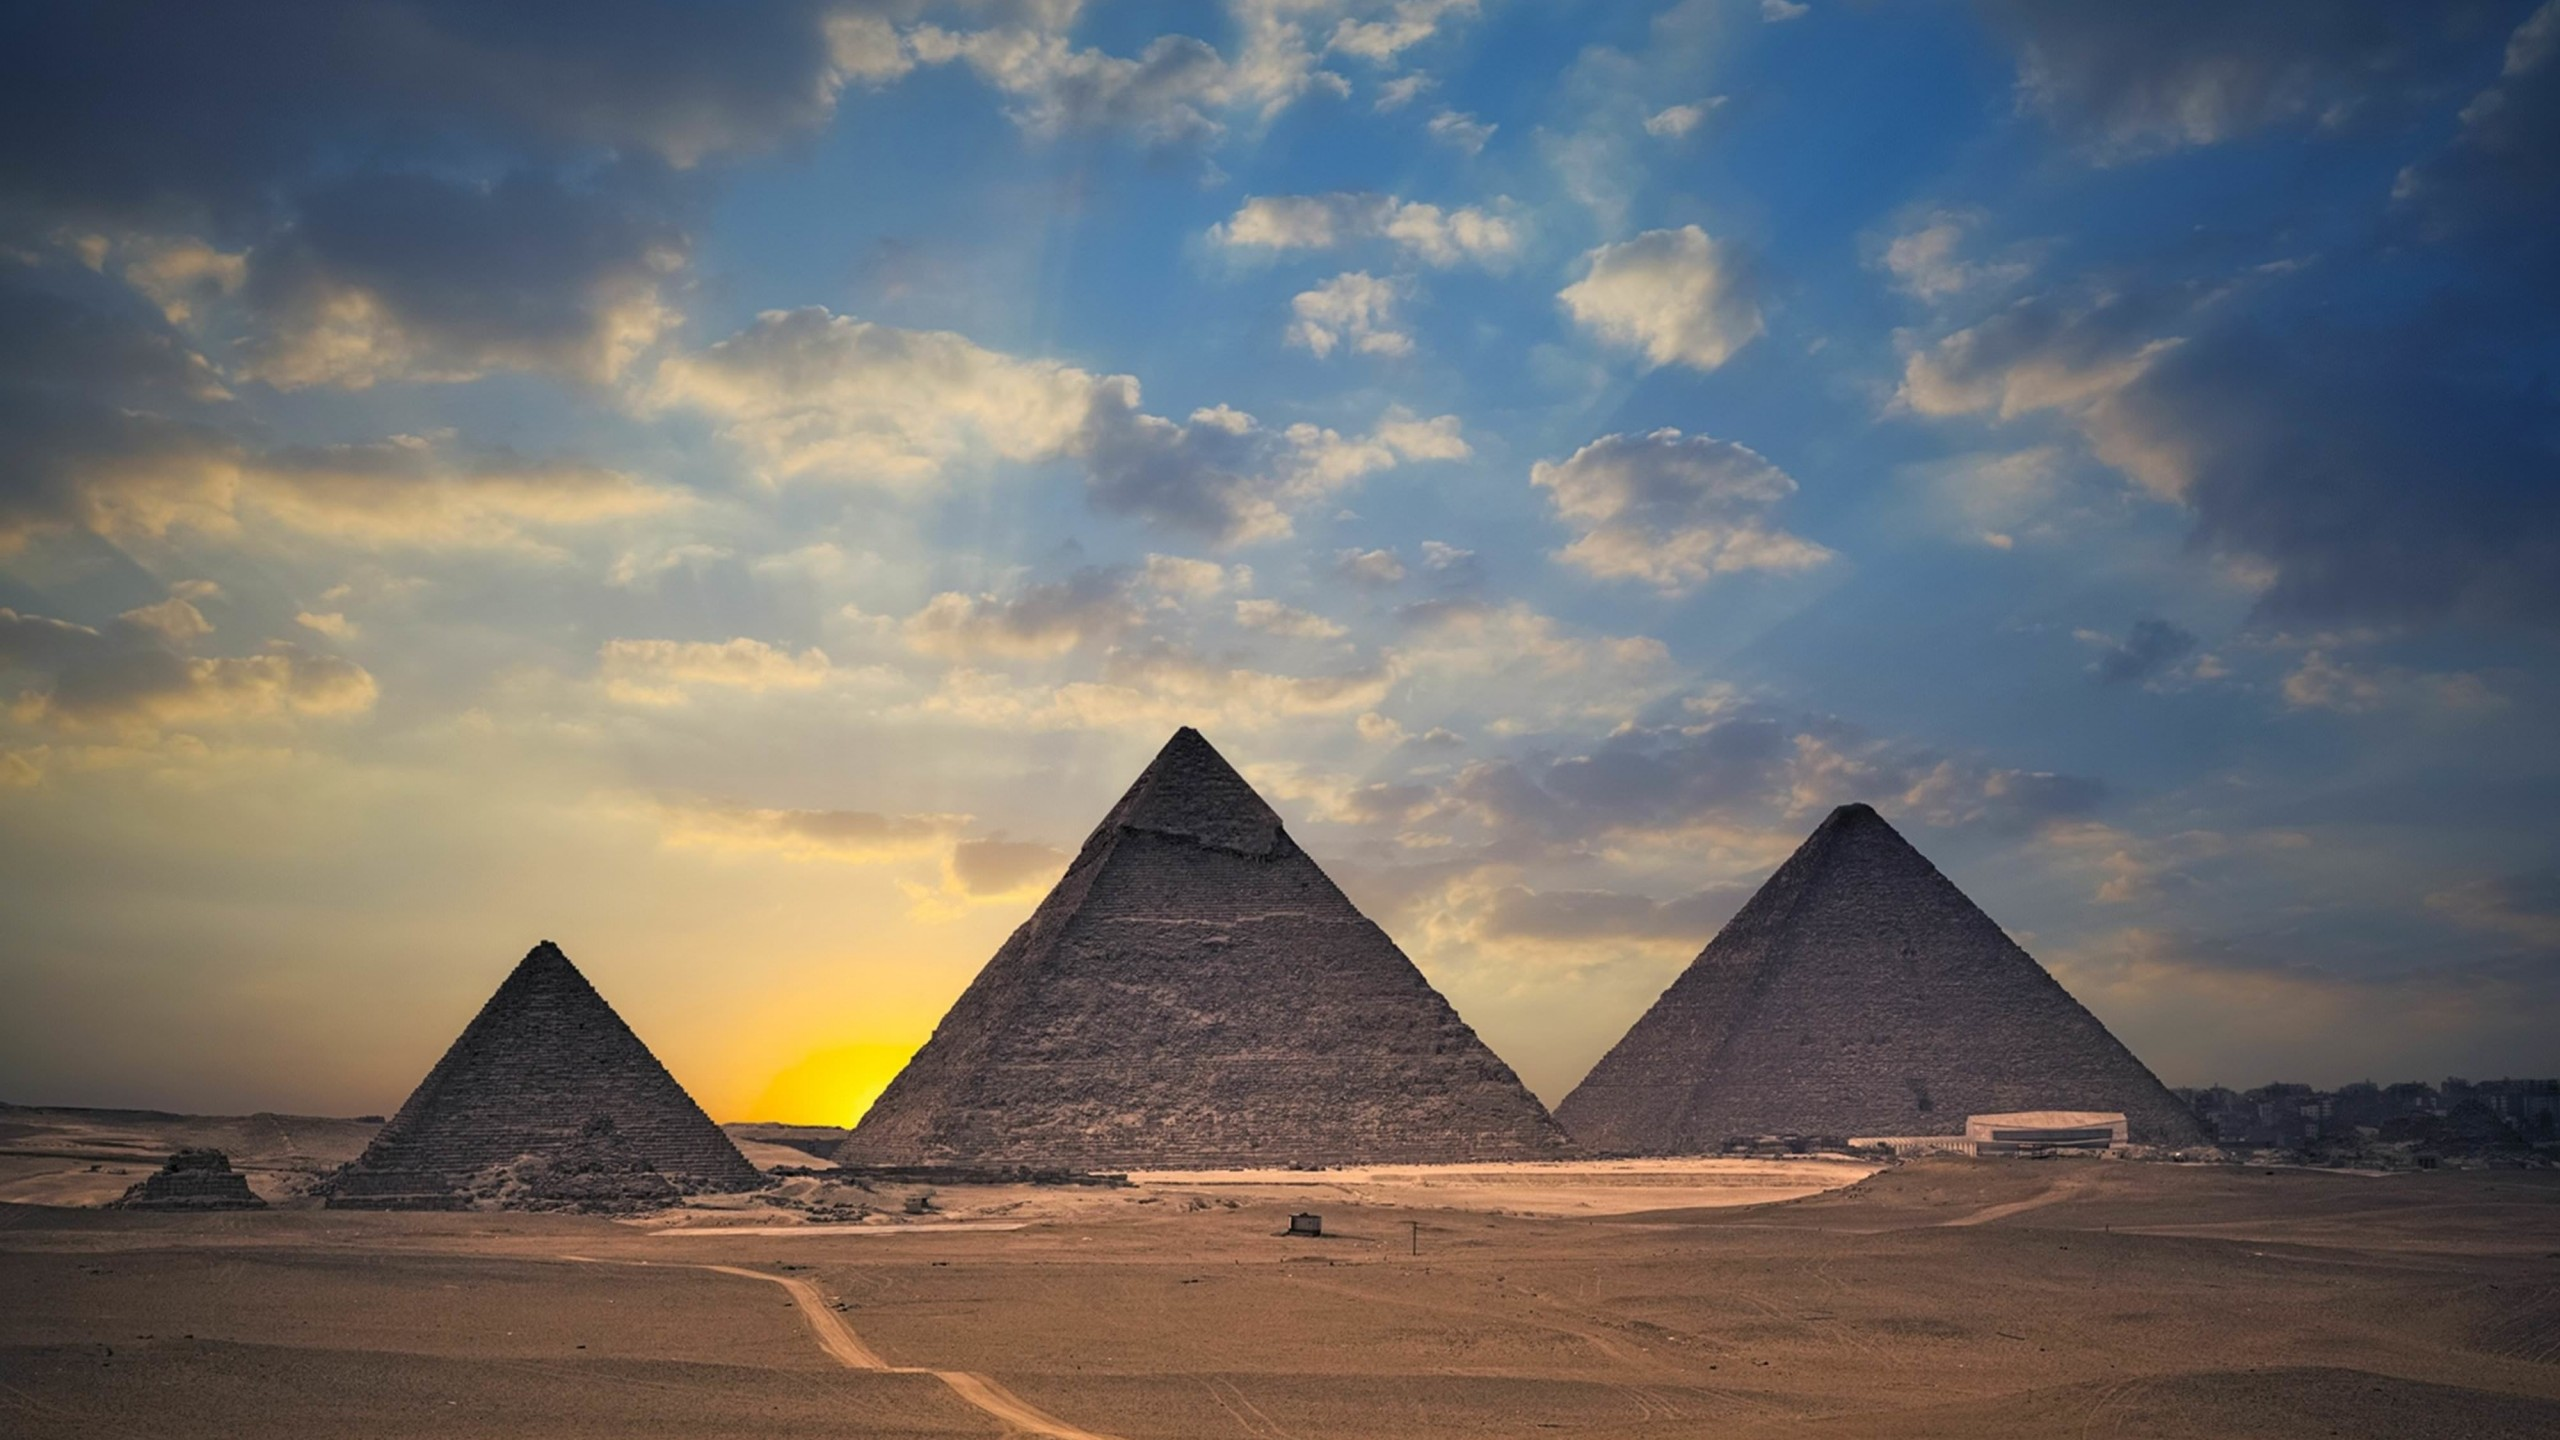 The Great Pyramids of Giza Wallpaper for Desktop 2560x1440